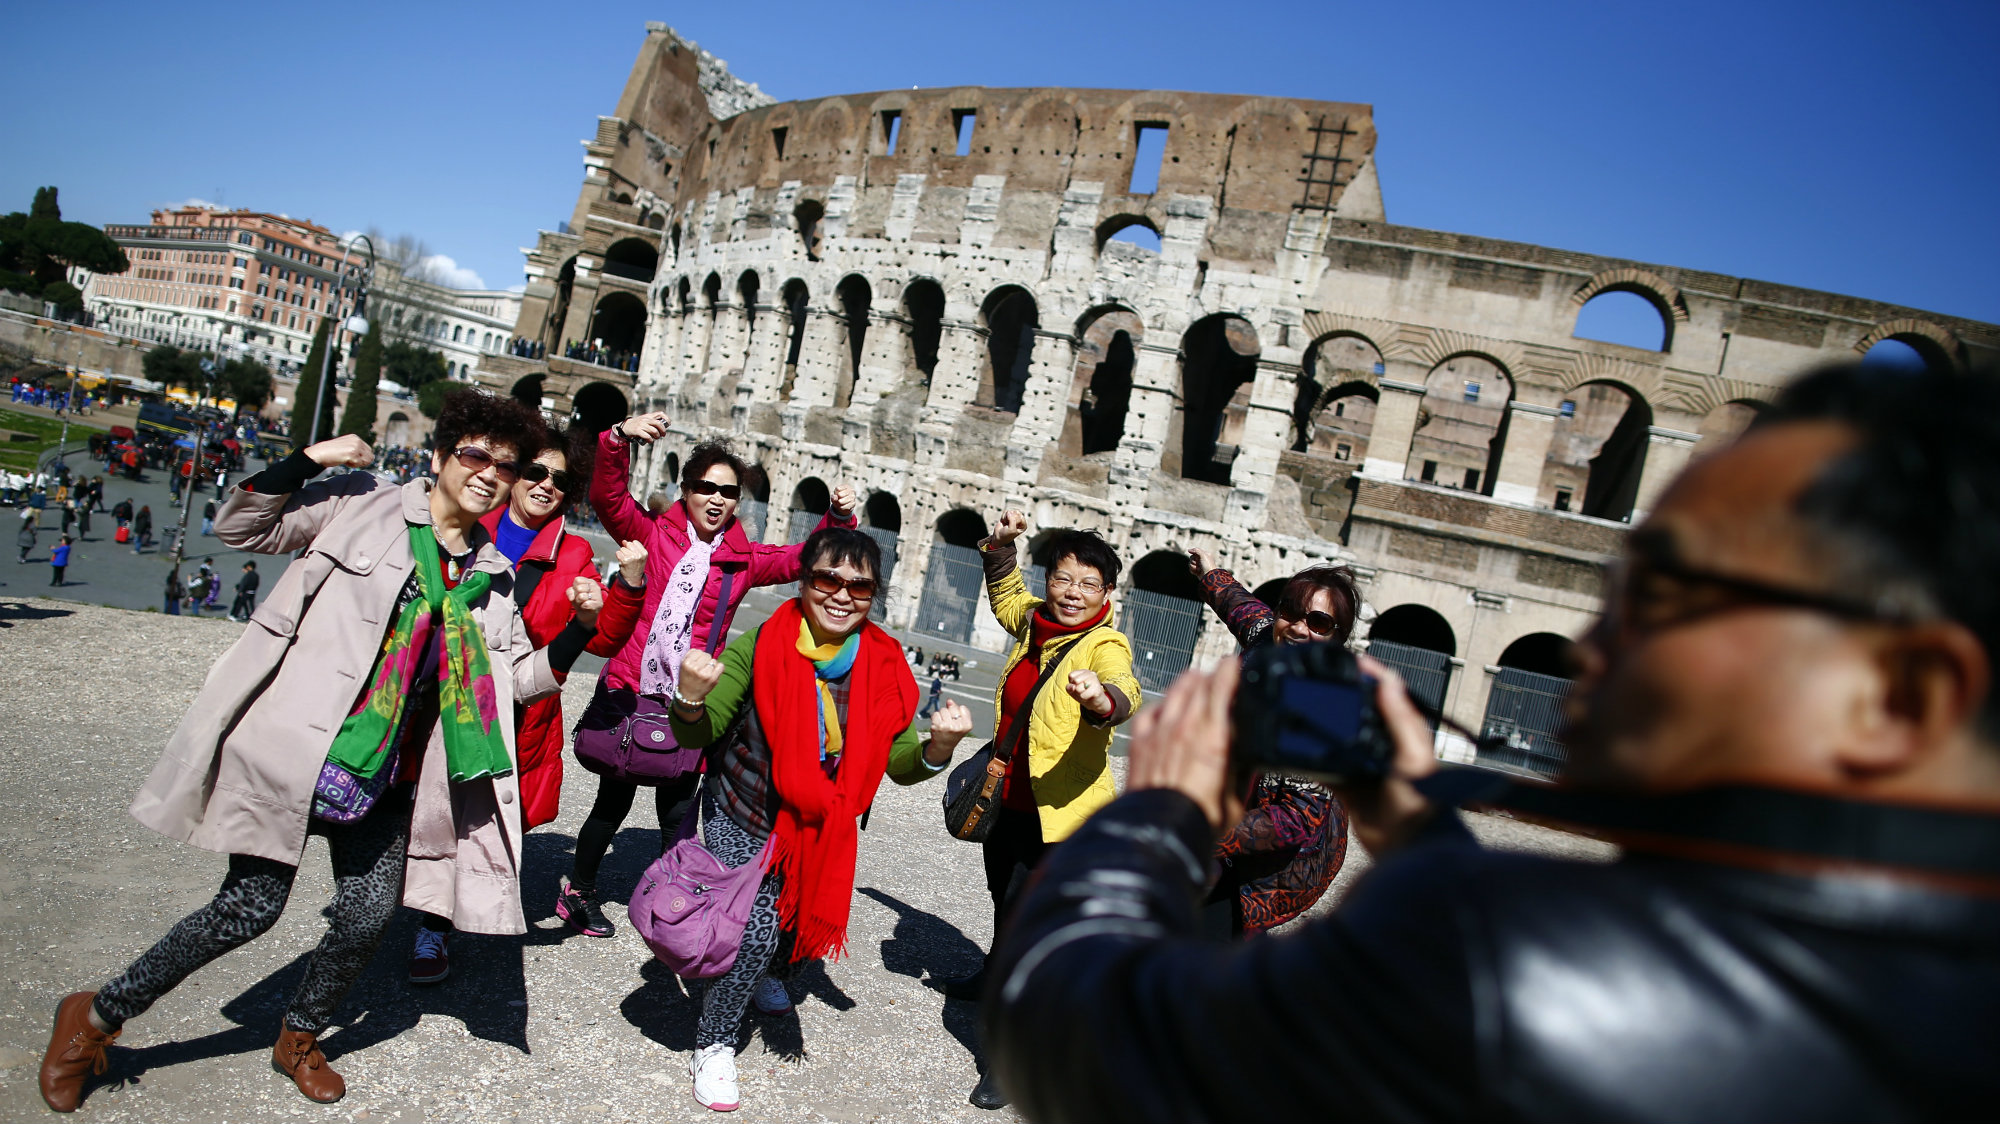 Tourists pose in front of the Colosseum in Rome.